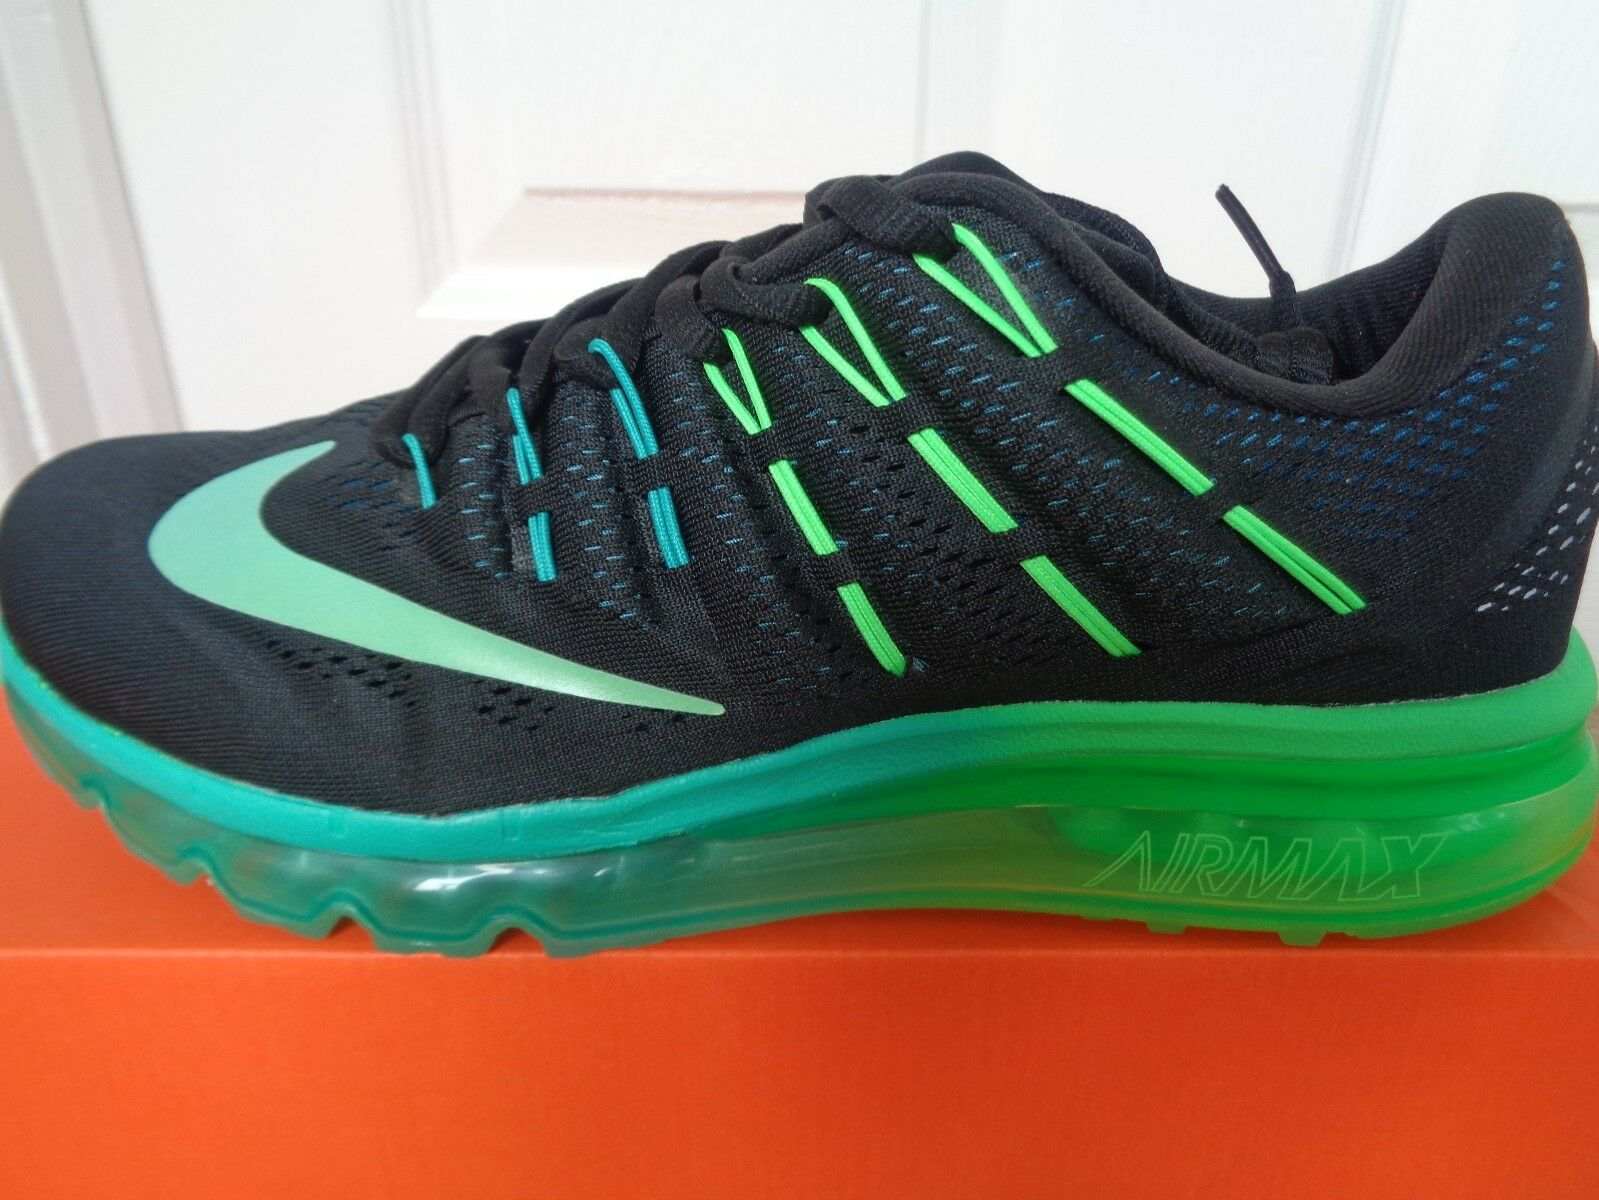 Nike Air max 2016 trainers sneakers shoes 806771 42.5 003 uk 8 eu 42.5 806771 us 9 NEW+BOX f43ee7